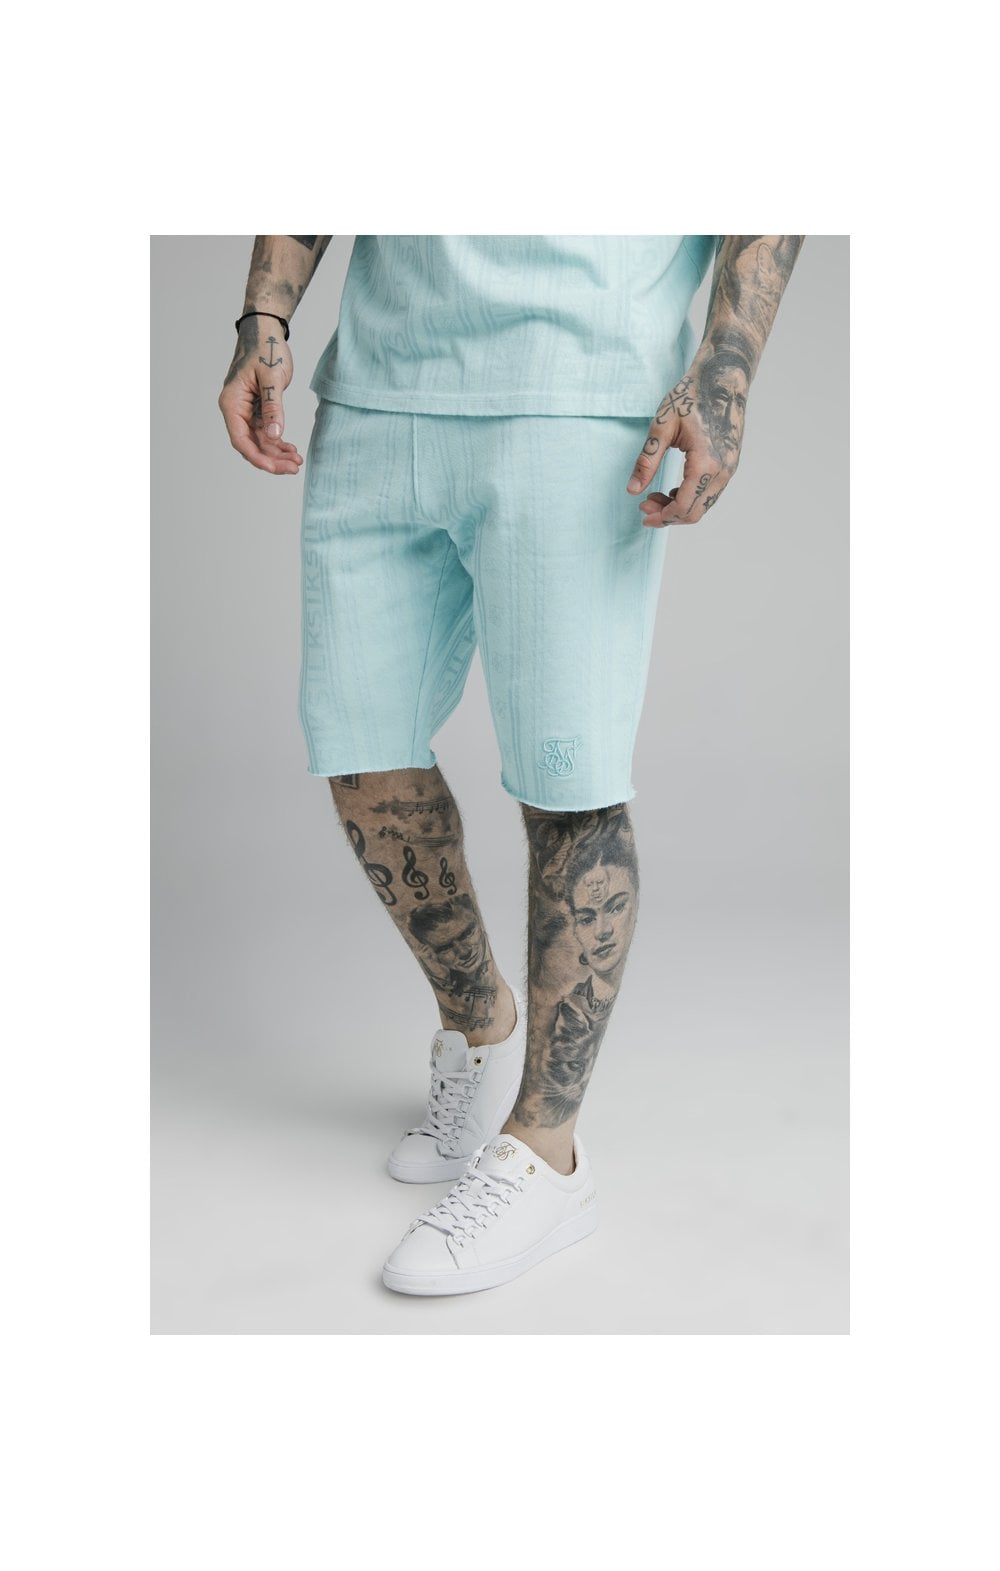 SikSilk Pastel Gym Shorts - Blue